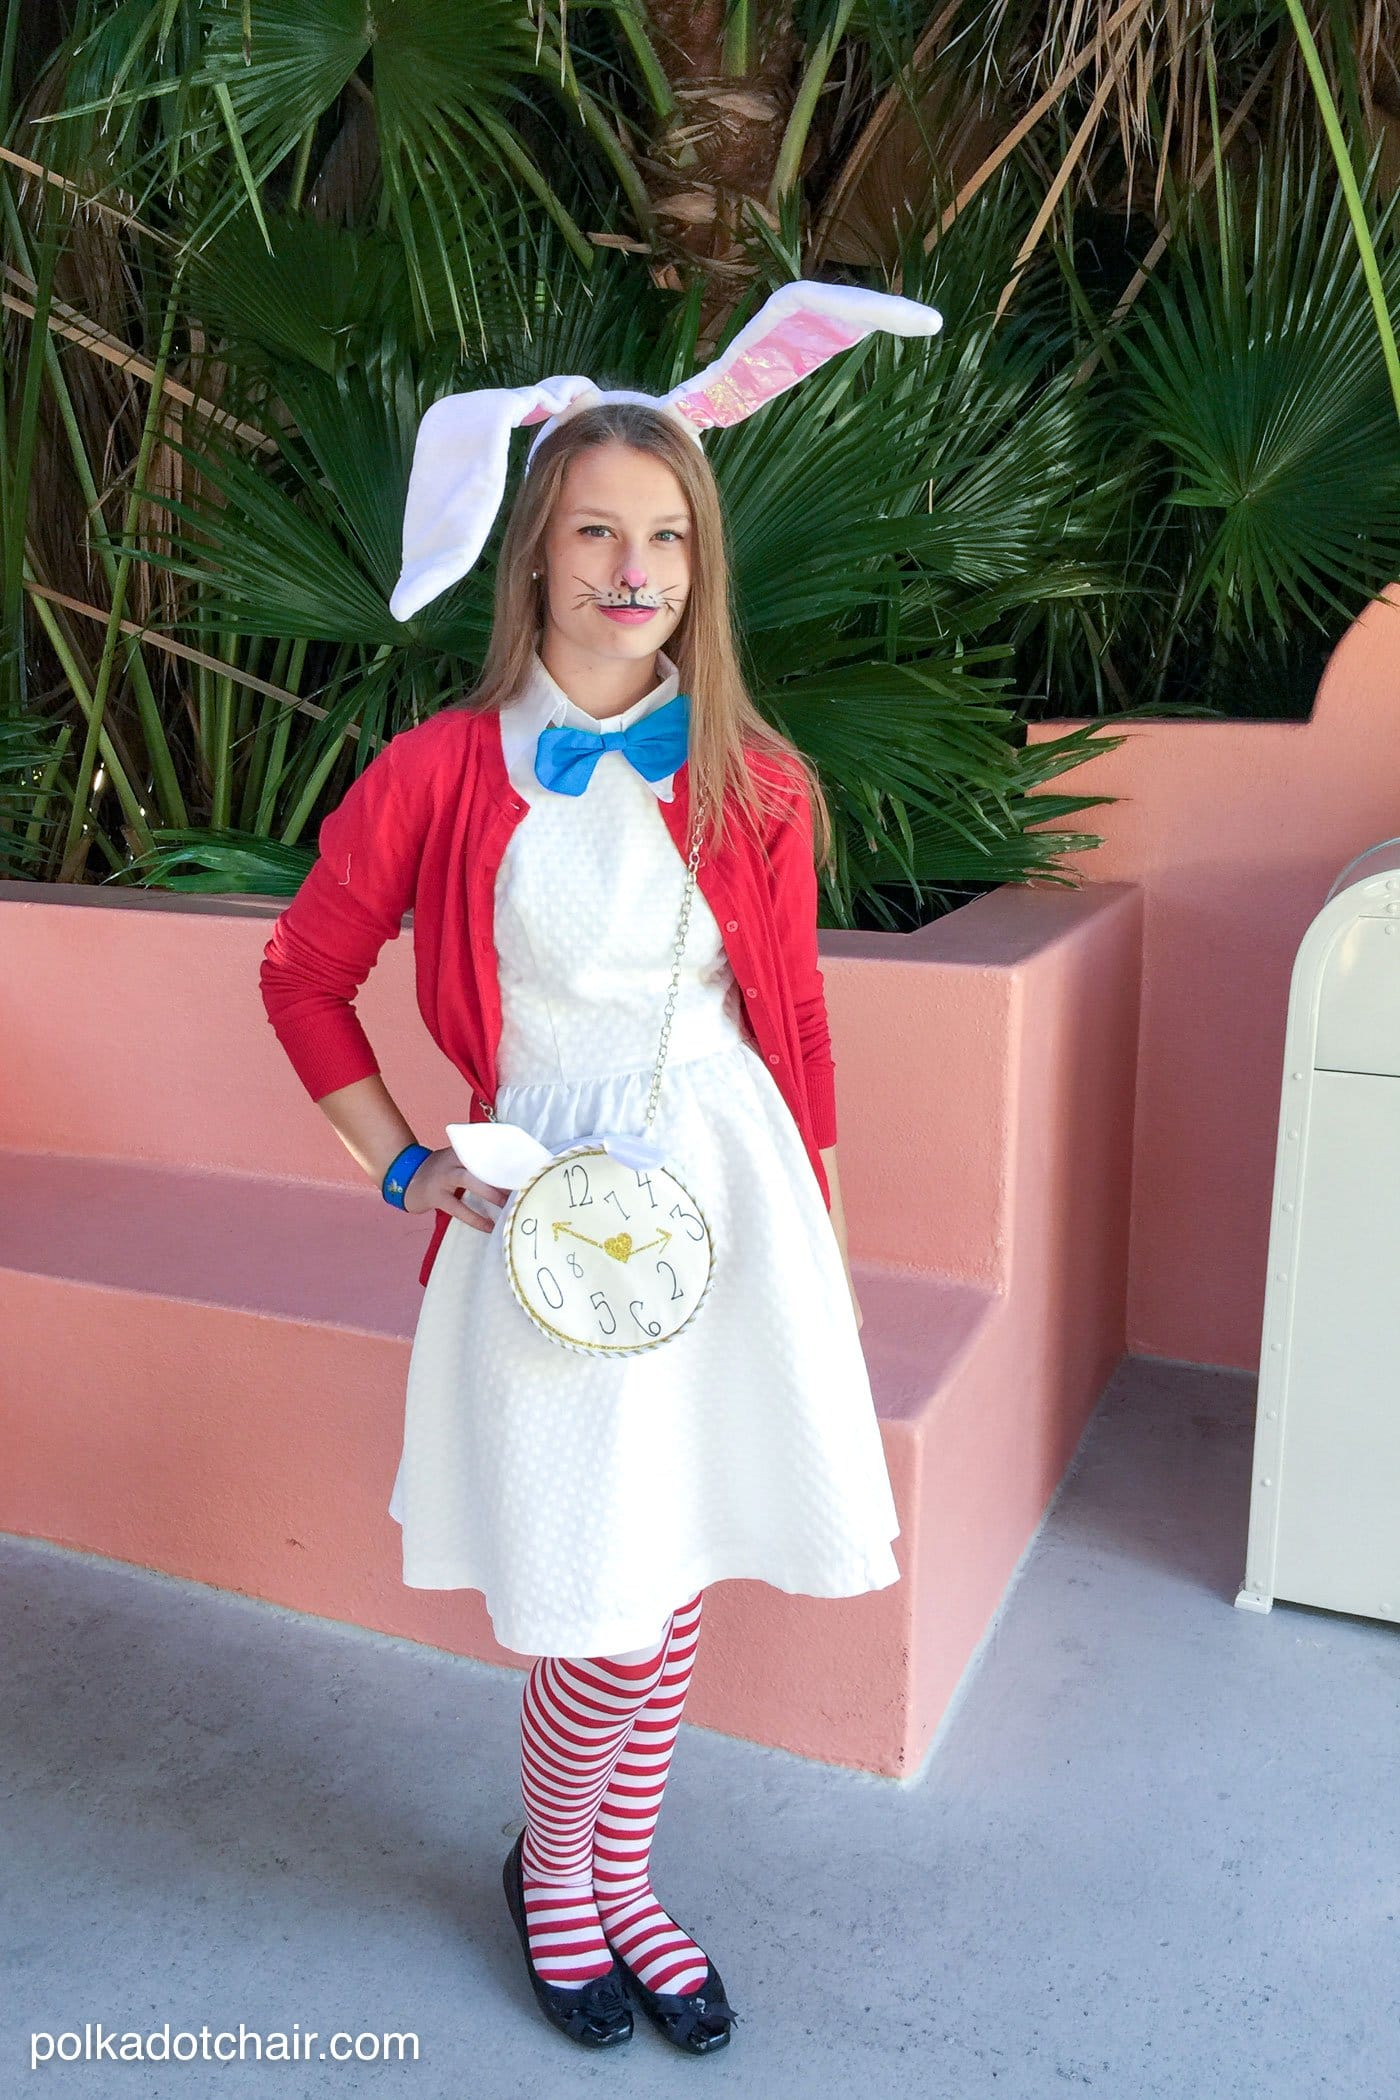 No Sew Alice In Wonderland Costume Ideas  The Polka Dot Chair